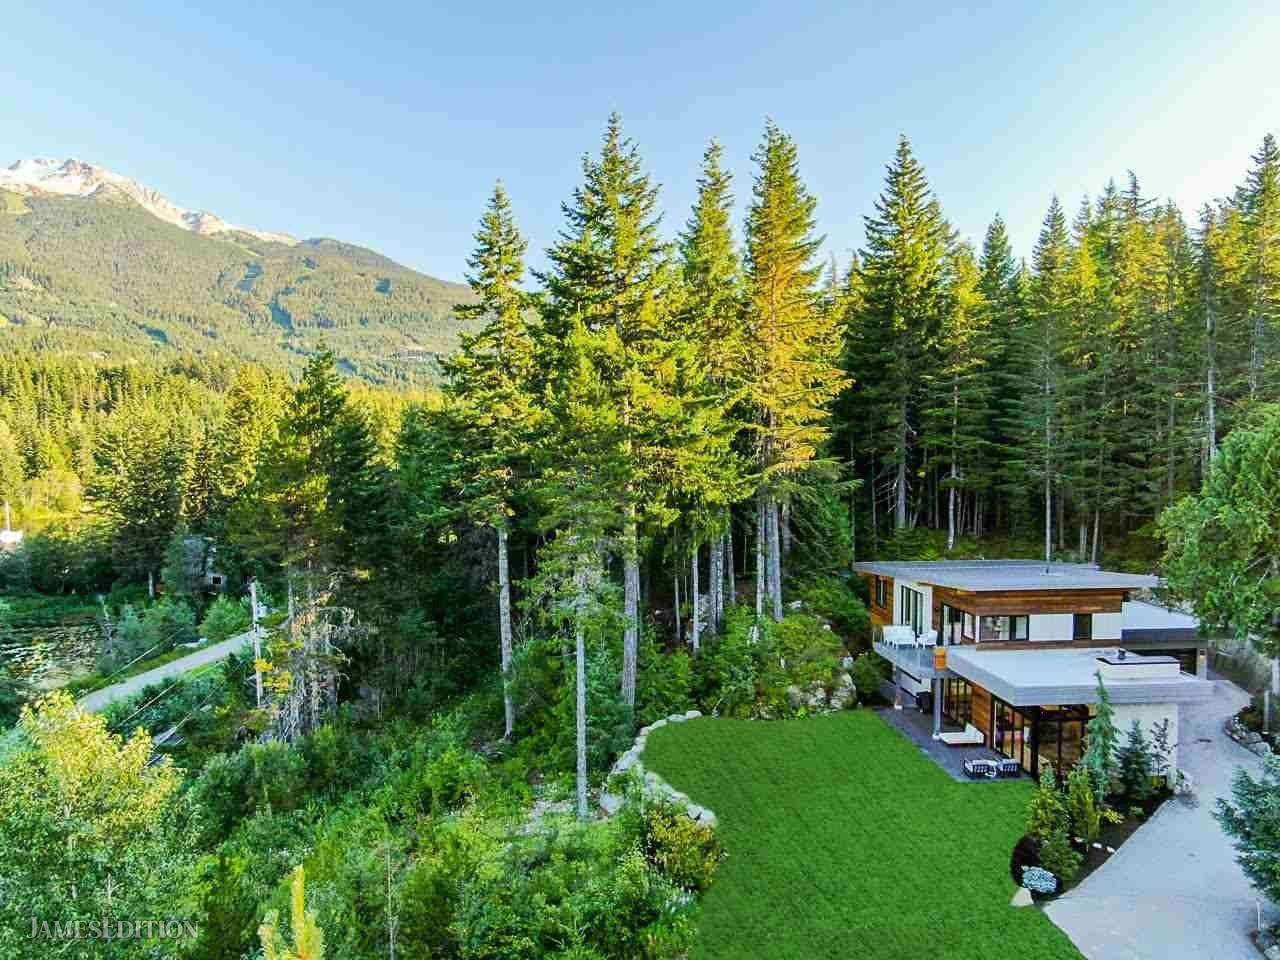 House in British Columbia, Canada 1